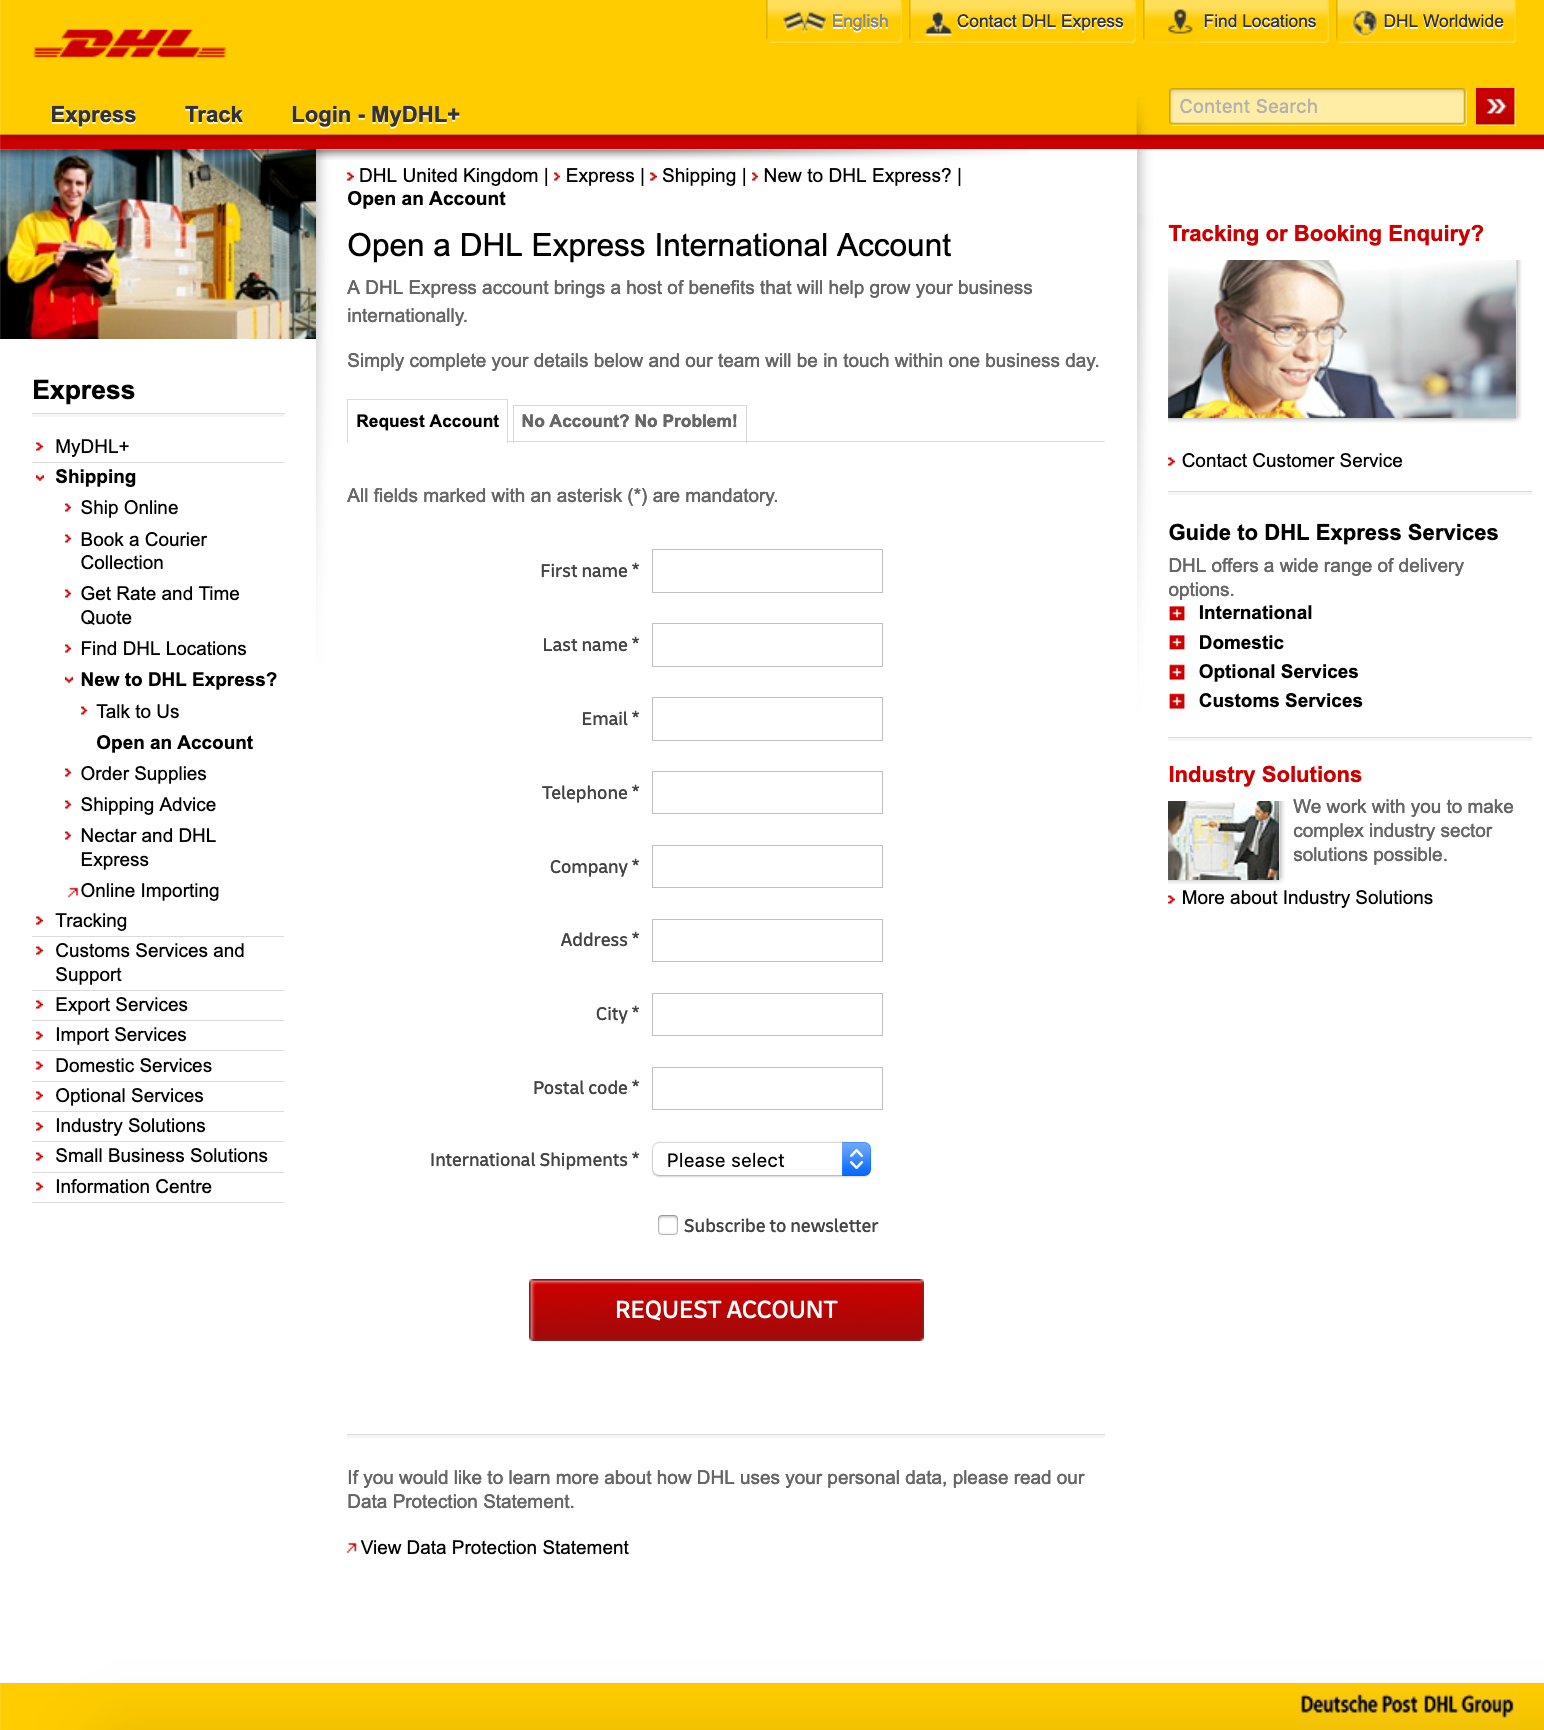 DHL Express - How to create an account? - DHL Express request account form